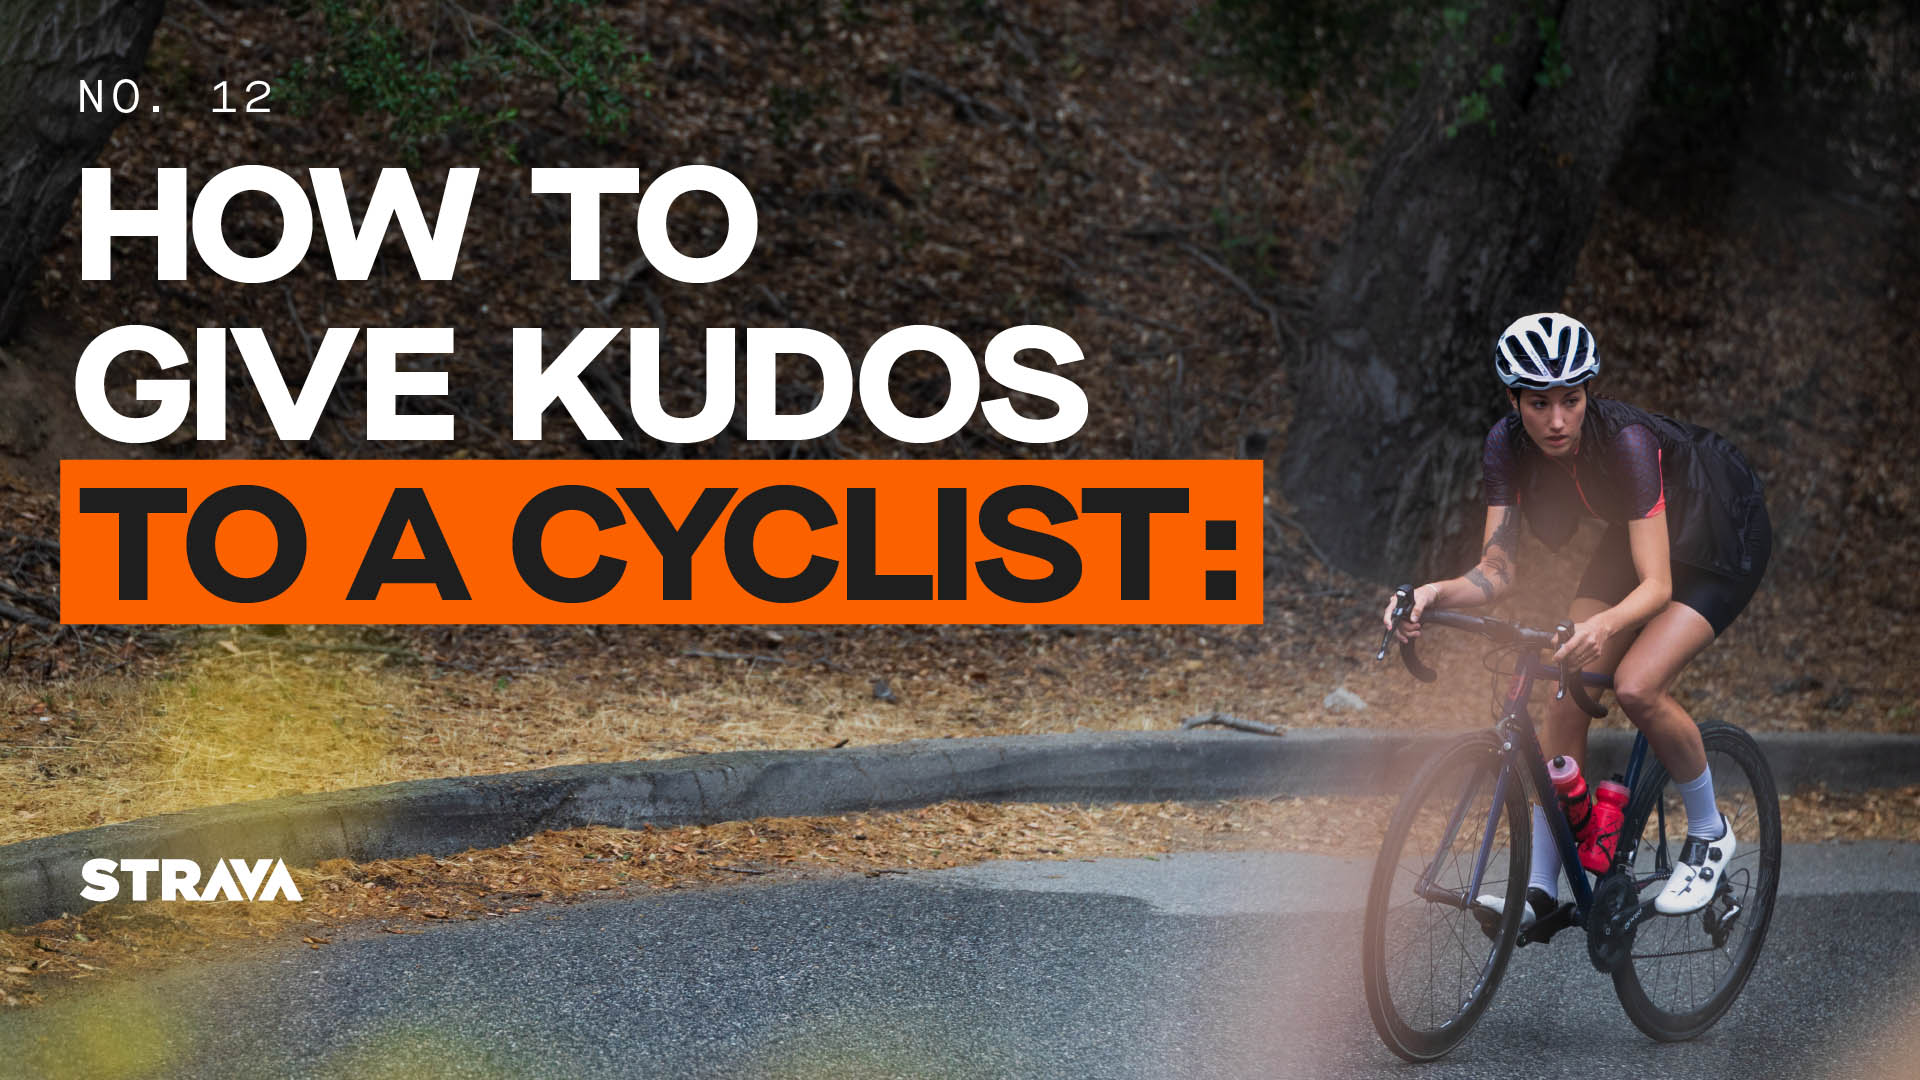 How to Give Kudos to a Cyclist